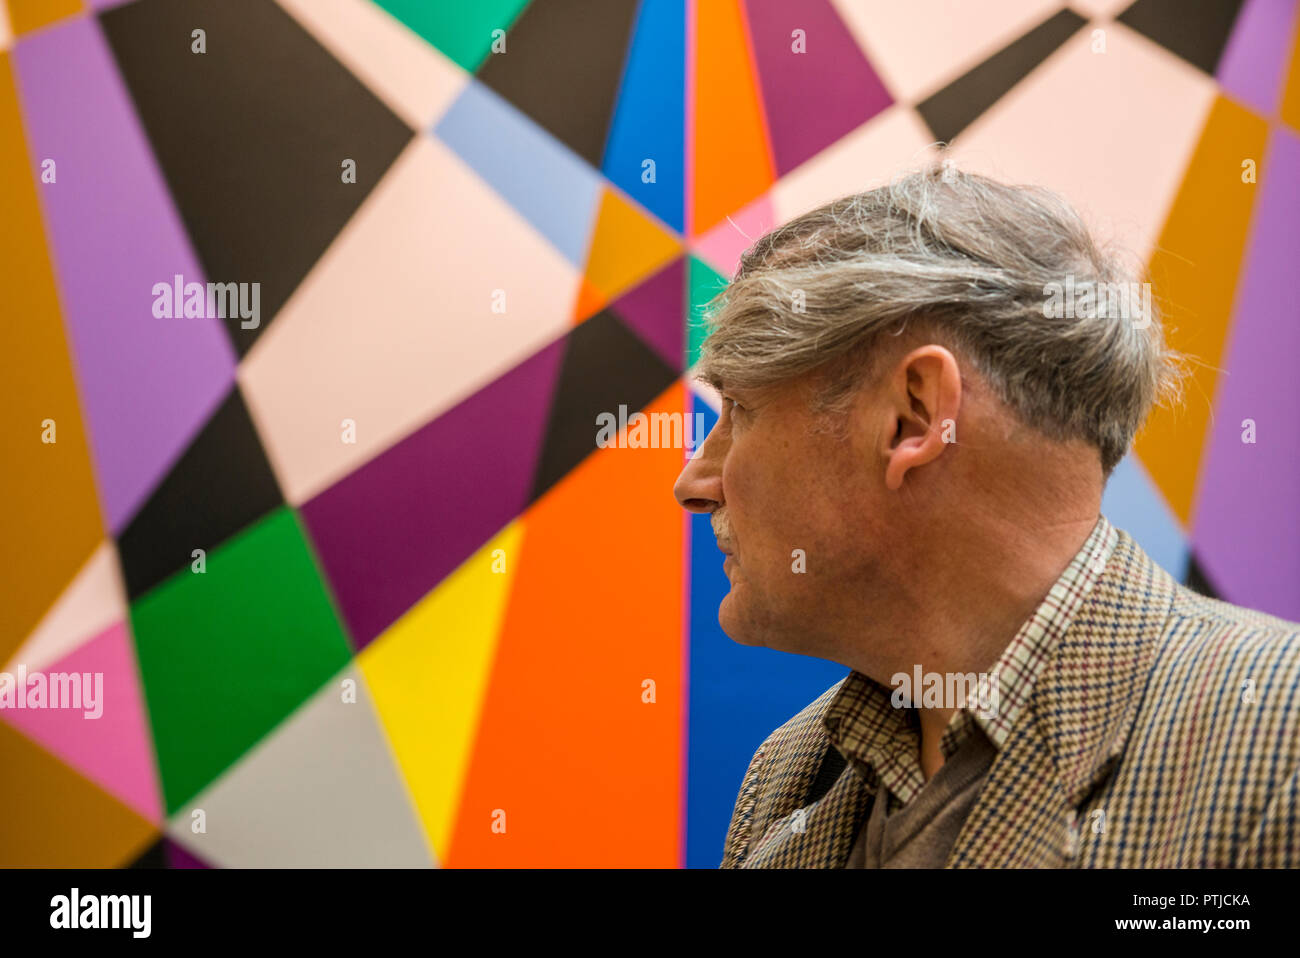 Man looking towards brightly coloured geometric artwork in the Modern Art Gallery in Leeds. - Stock Image